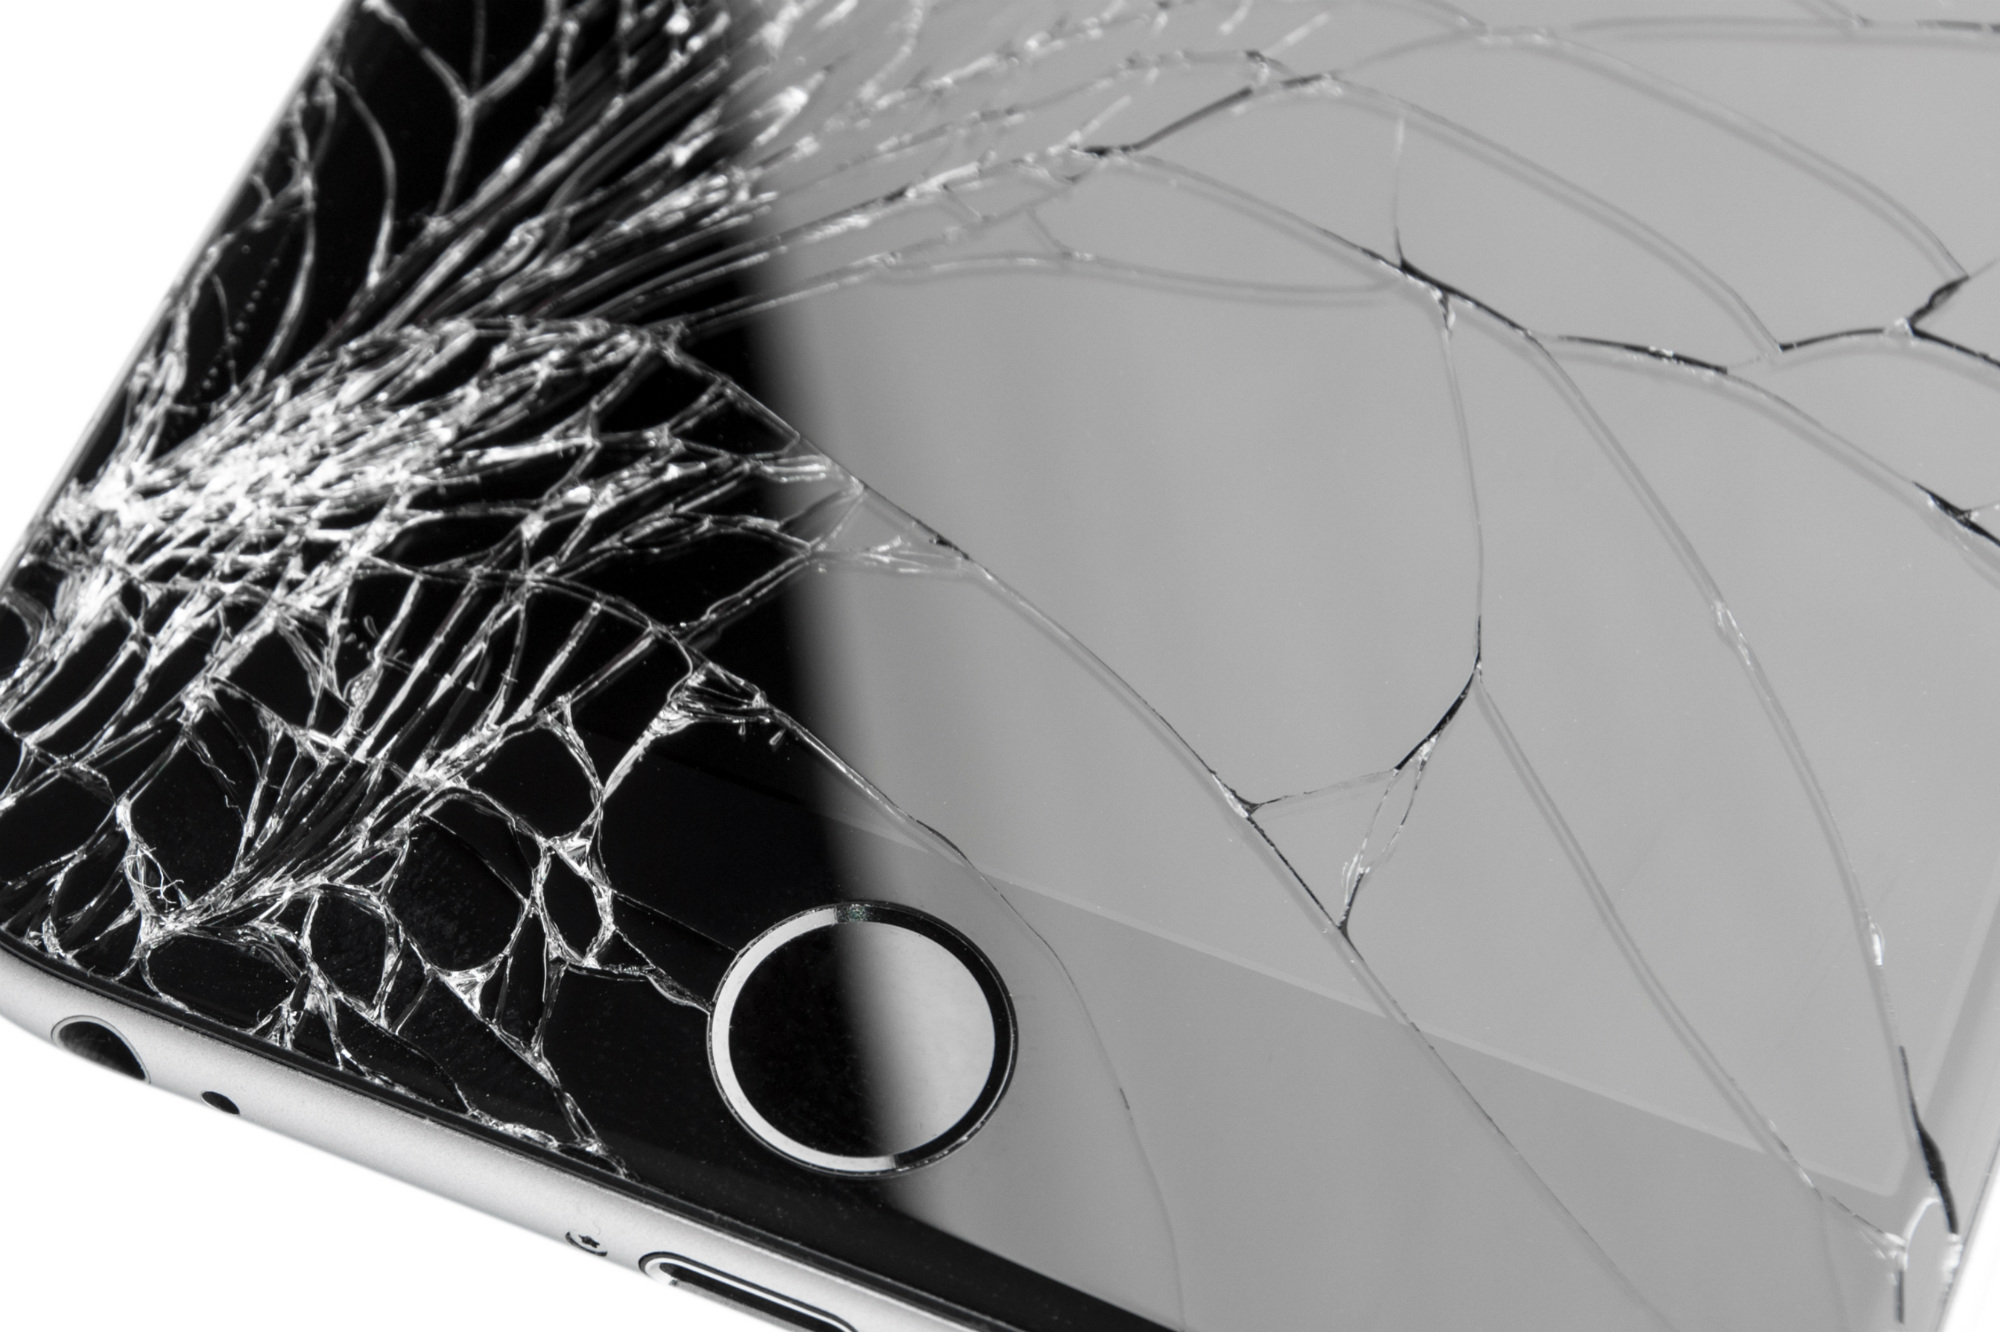 iPhone repair Los Angeles LA iphone broken screen repair